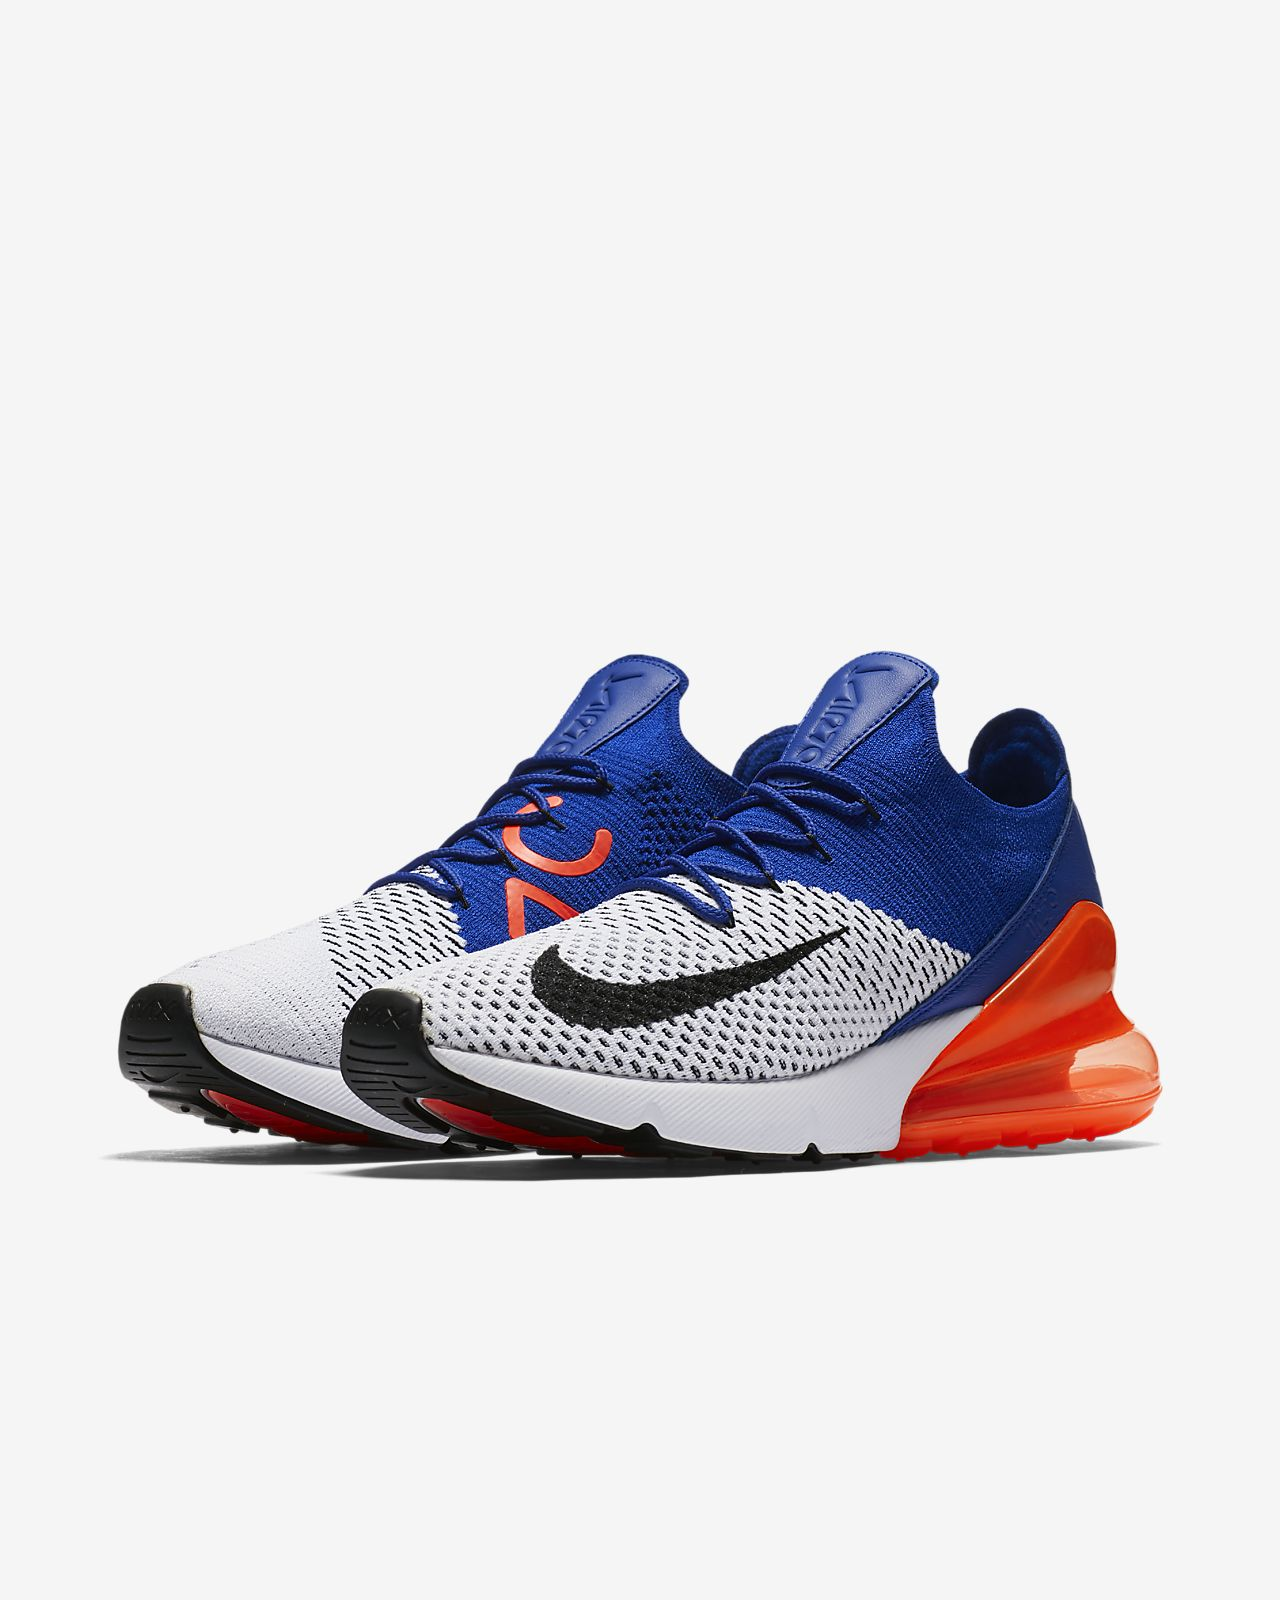 new concept 9985f 657e3 ... Chaussure Nike Air Max 270 Flyknit pour Homme